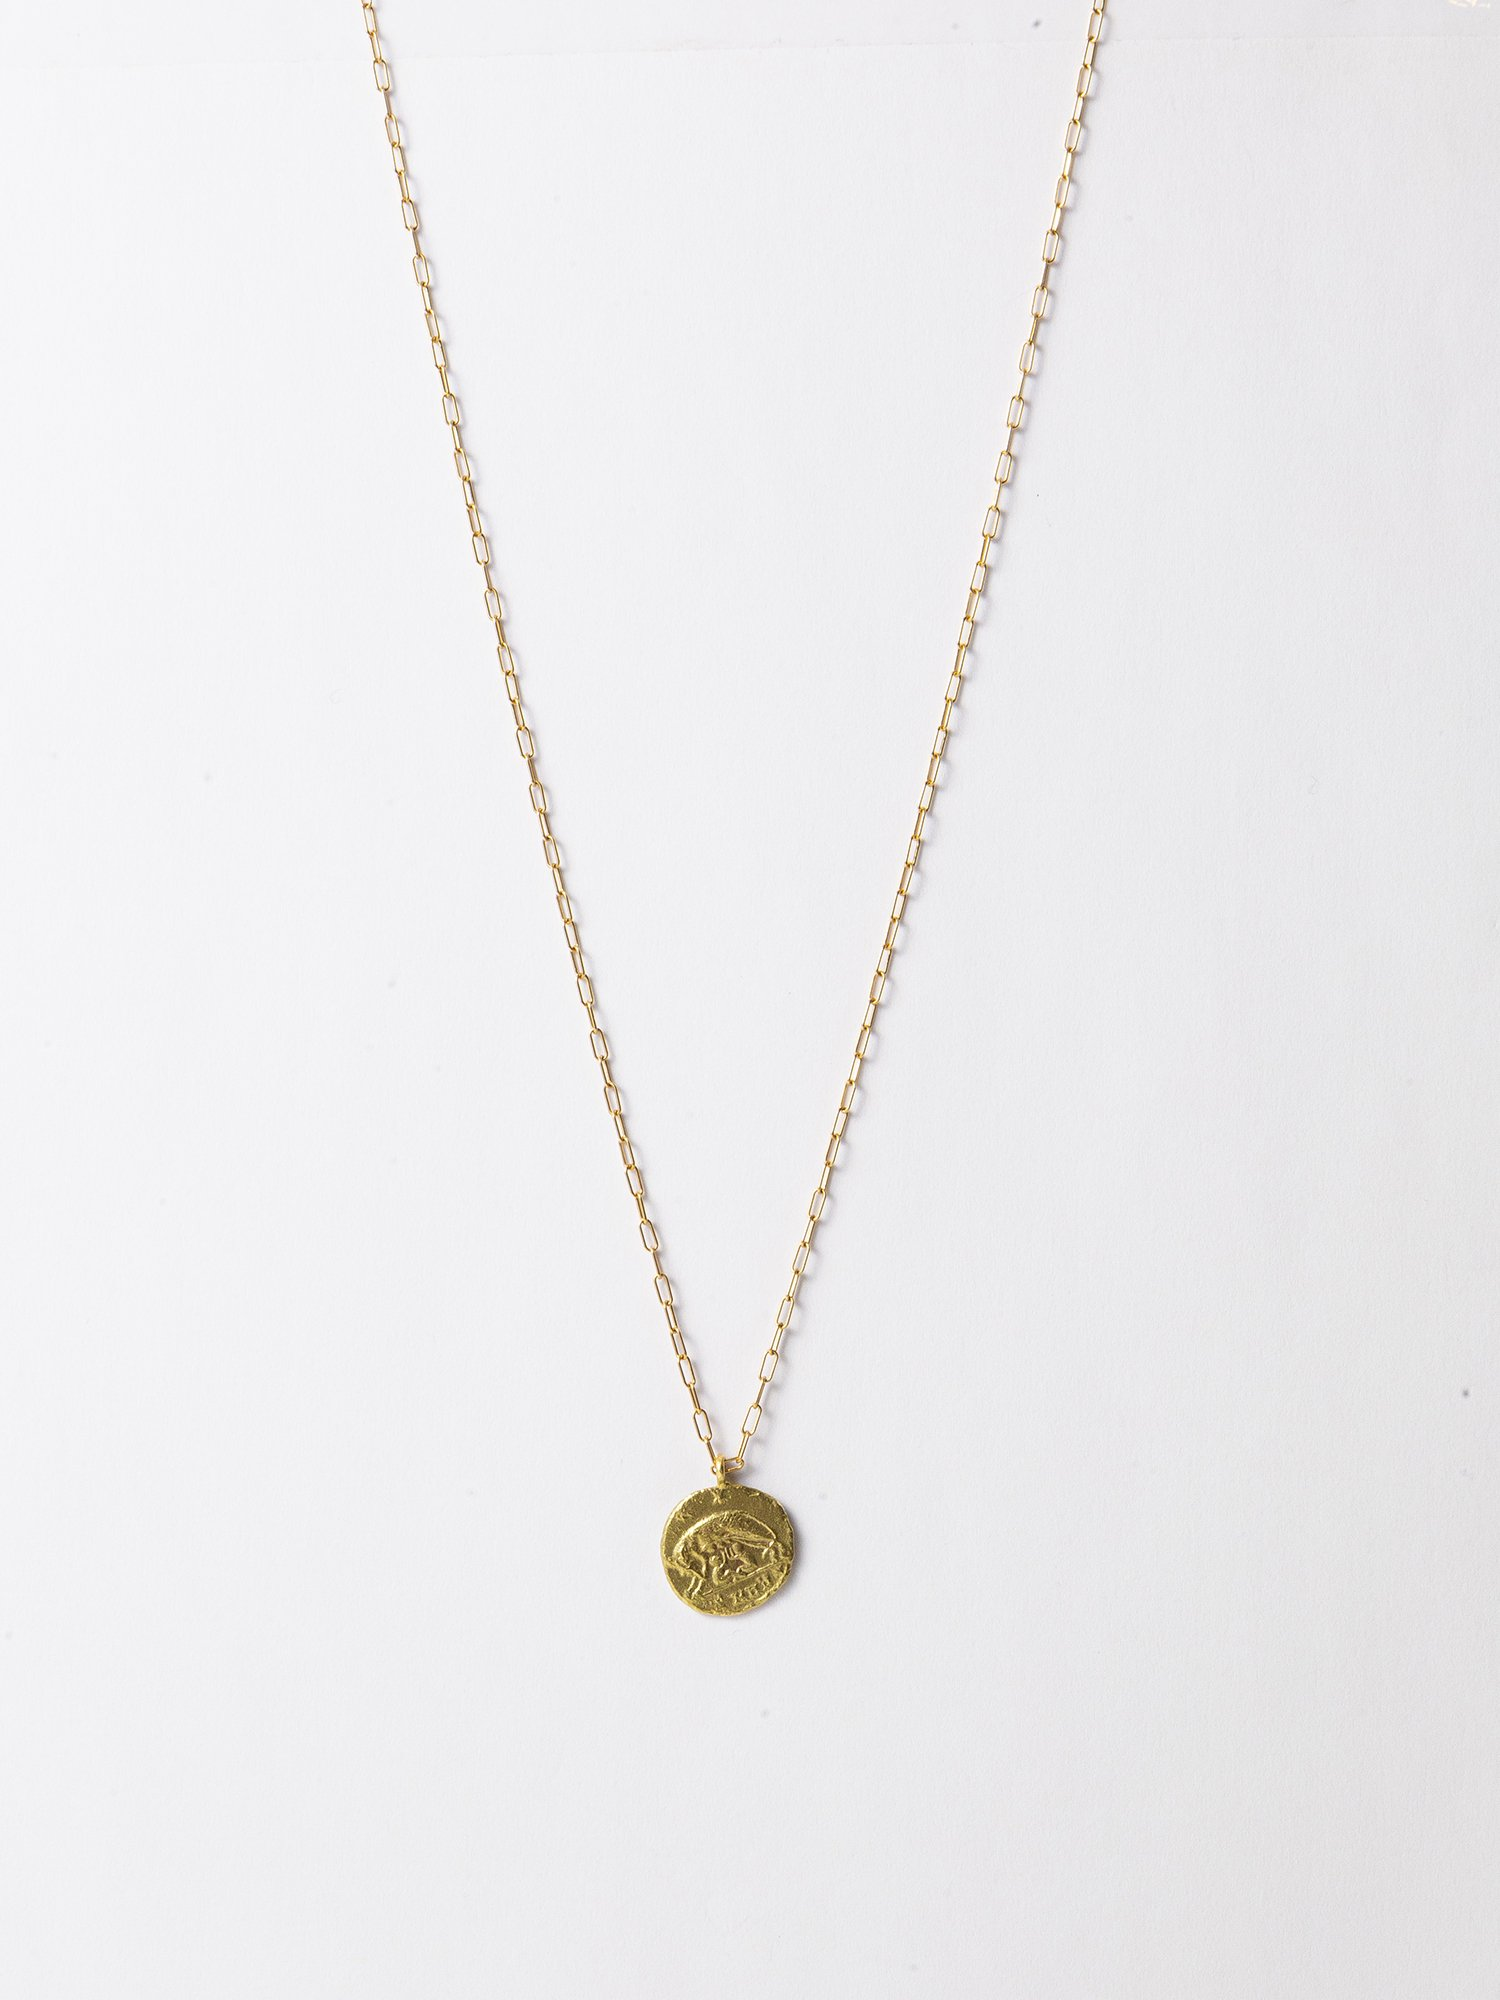 HELIOS / Roman coin necklace / Romulus and Remus / 在庫商品